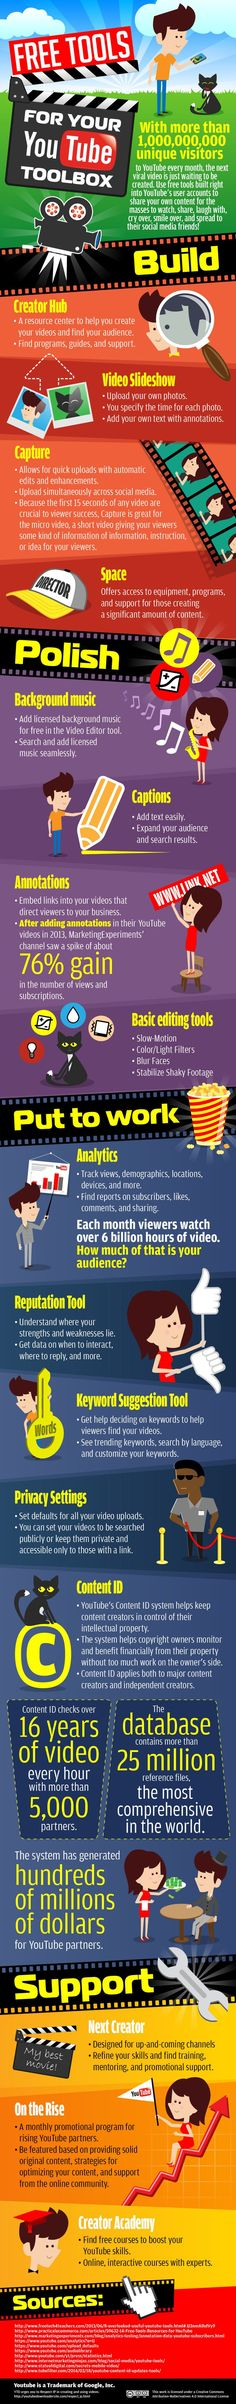 Free Tools For Your #YouTube Toolbox - #infographic #socialmedia